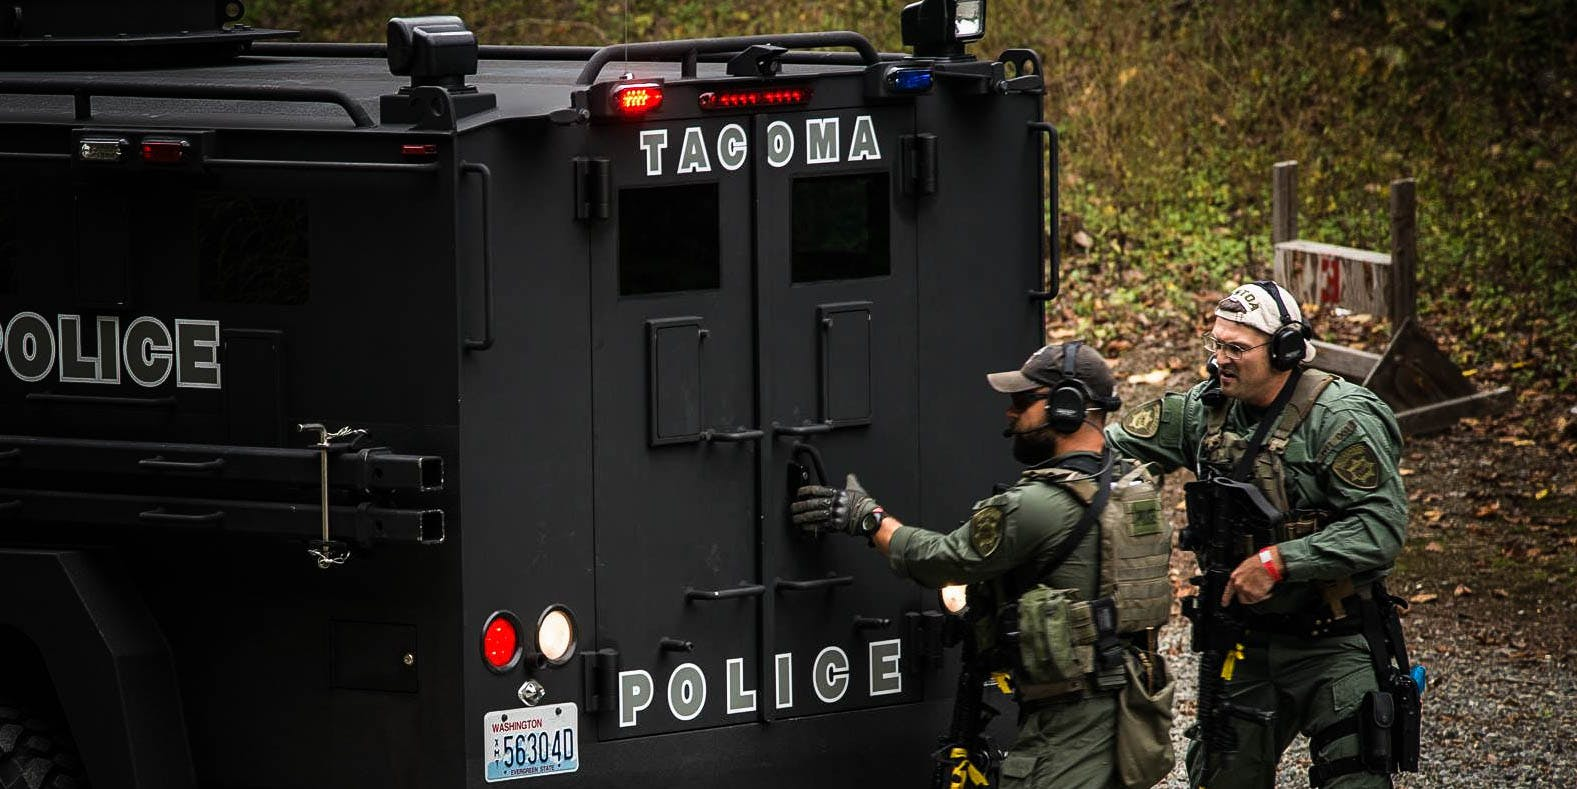 Police Raid 6 Grow Houses, Seize 2,500 Plants In Washington State